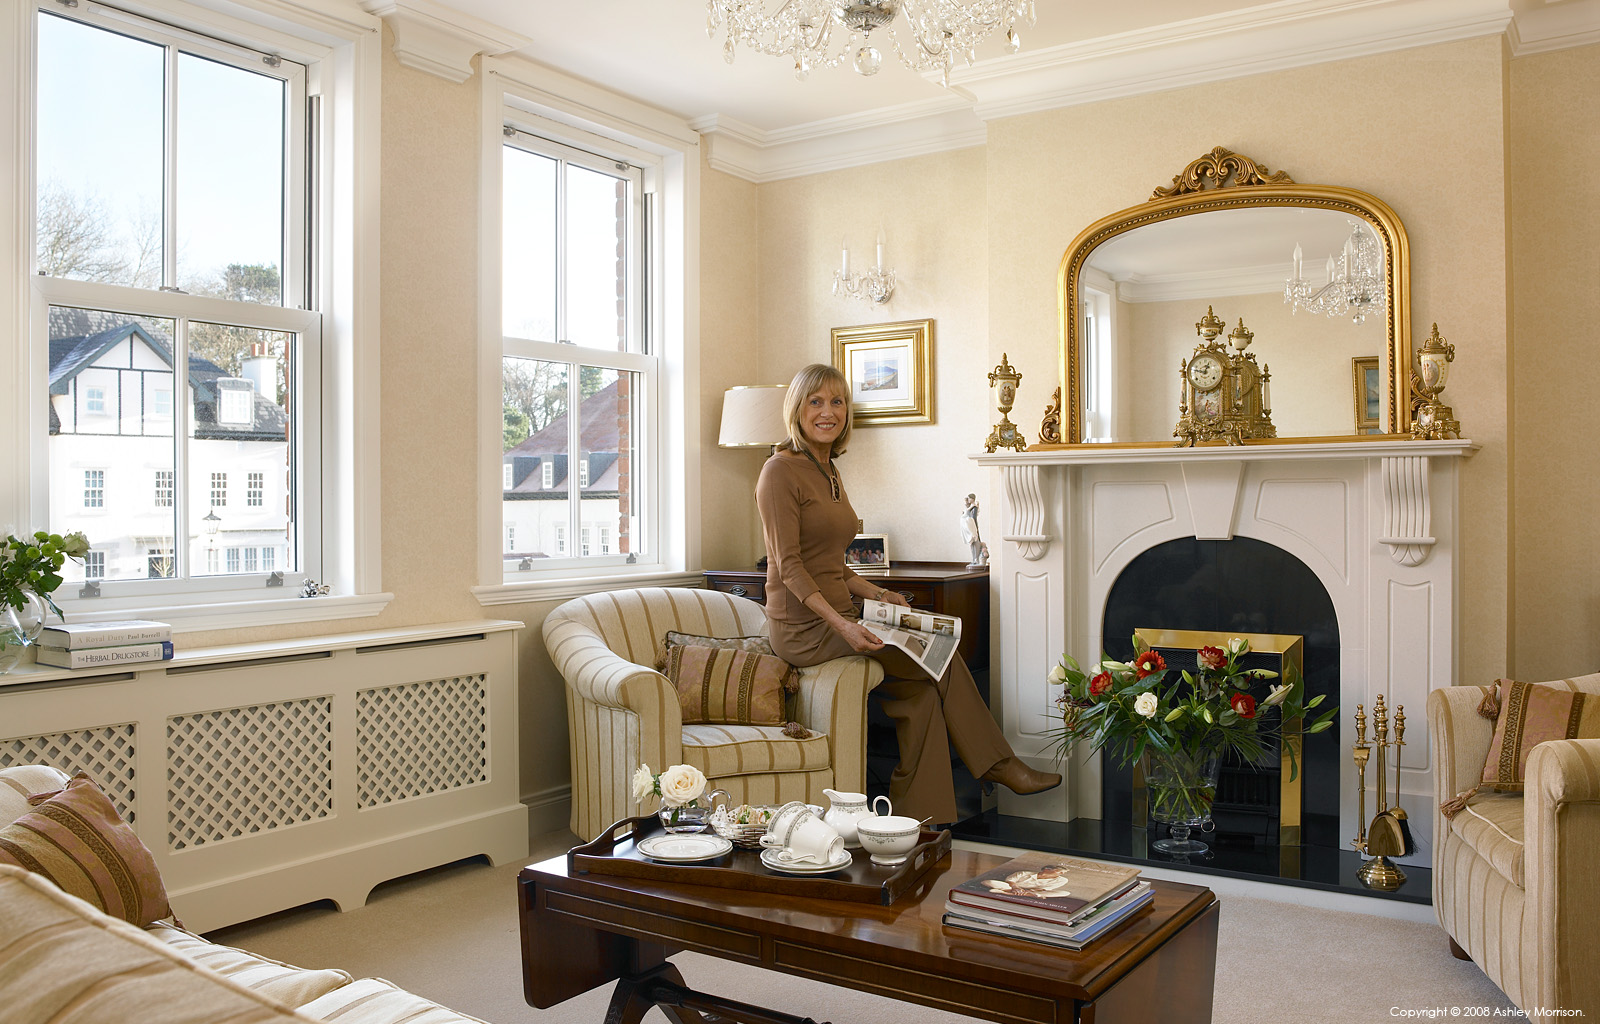 Ann O'Brien in the sitting room of her townhouse in Belfast by Ashley Morrison.